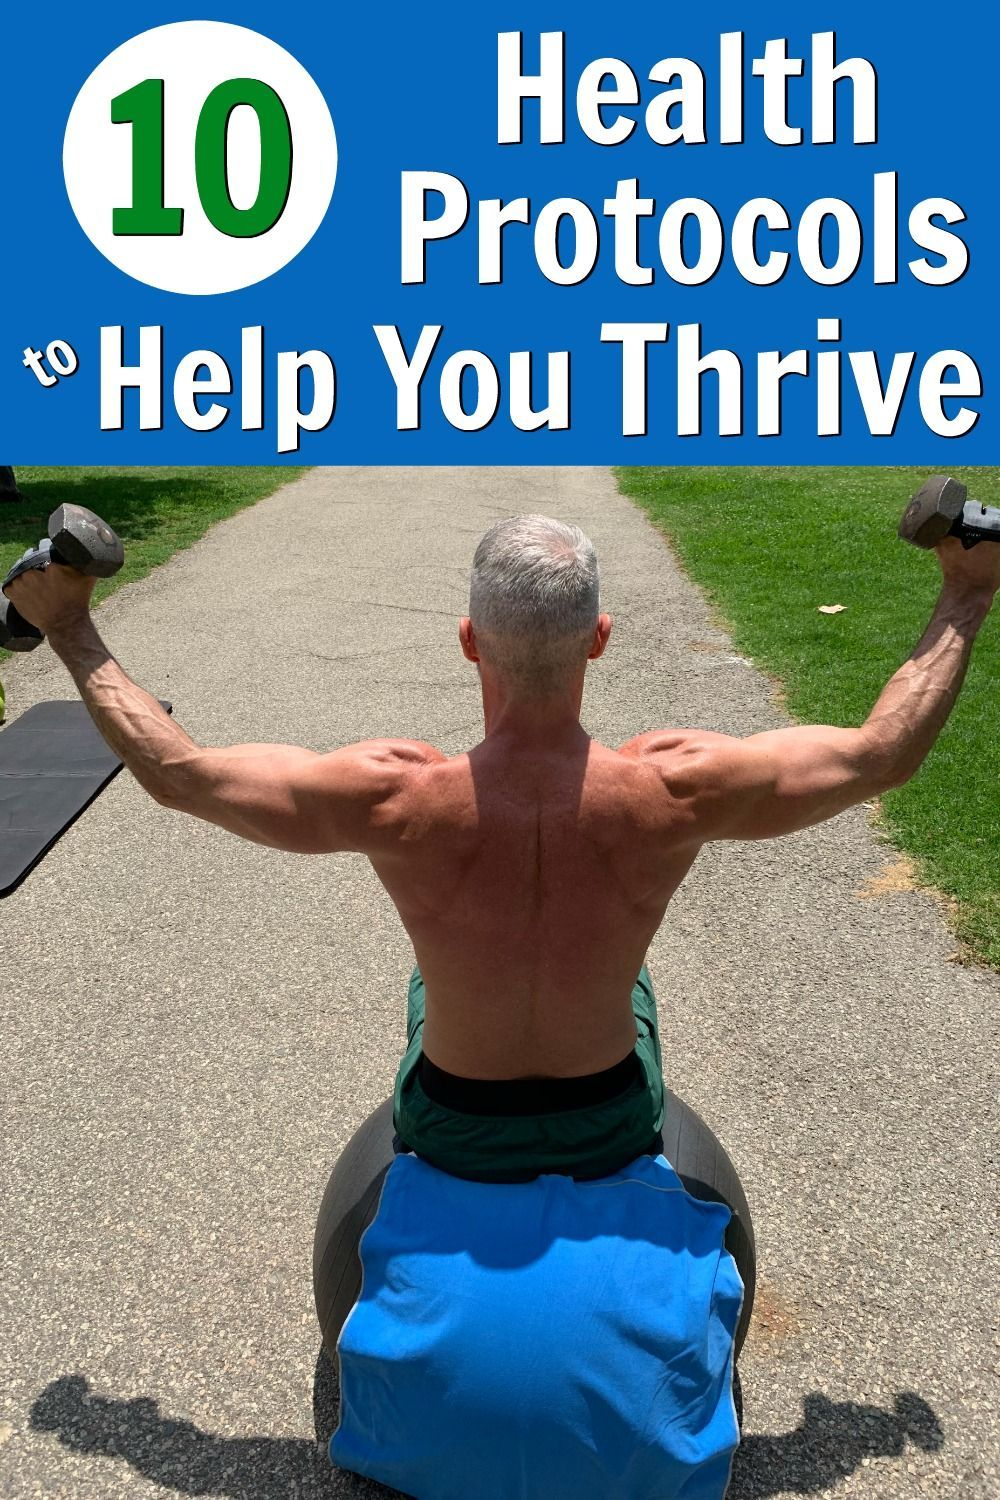 Click-through to see all 10 health protocols that people over the age of 50 can do to thrive. #healt...